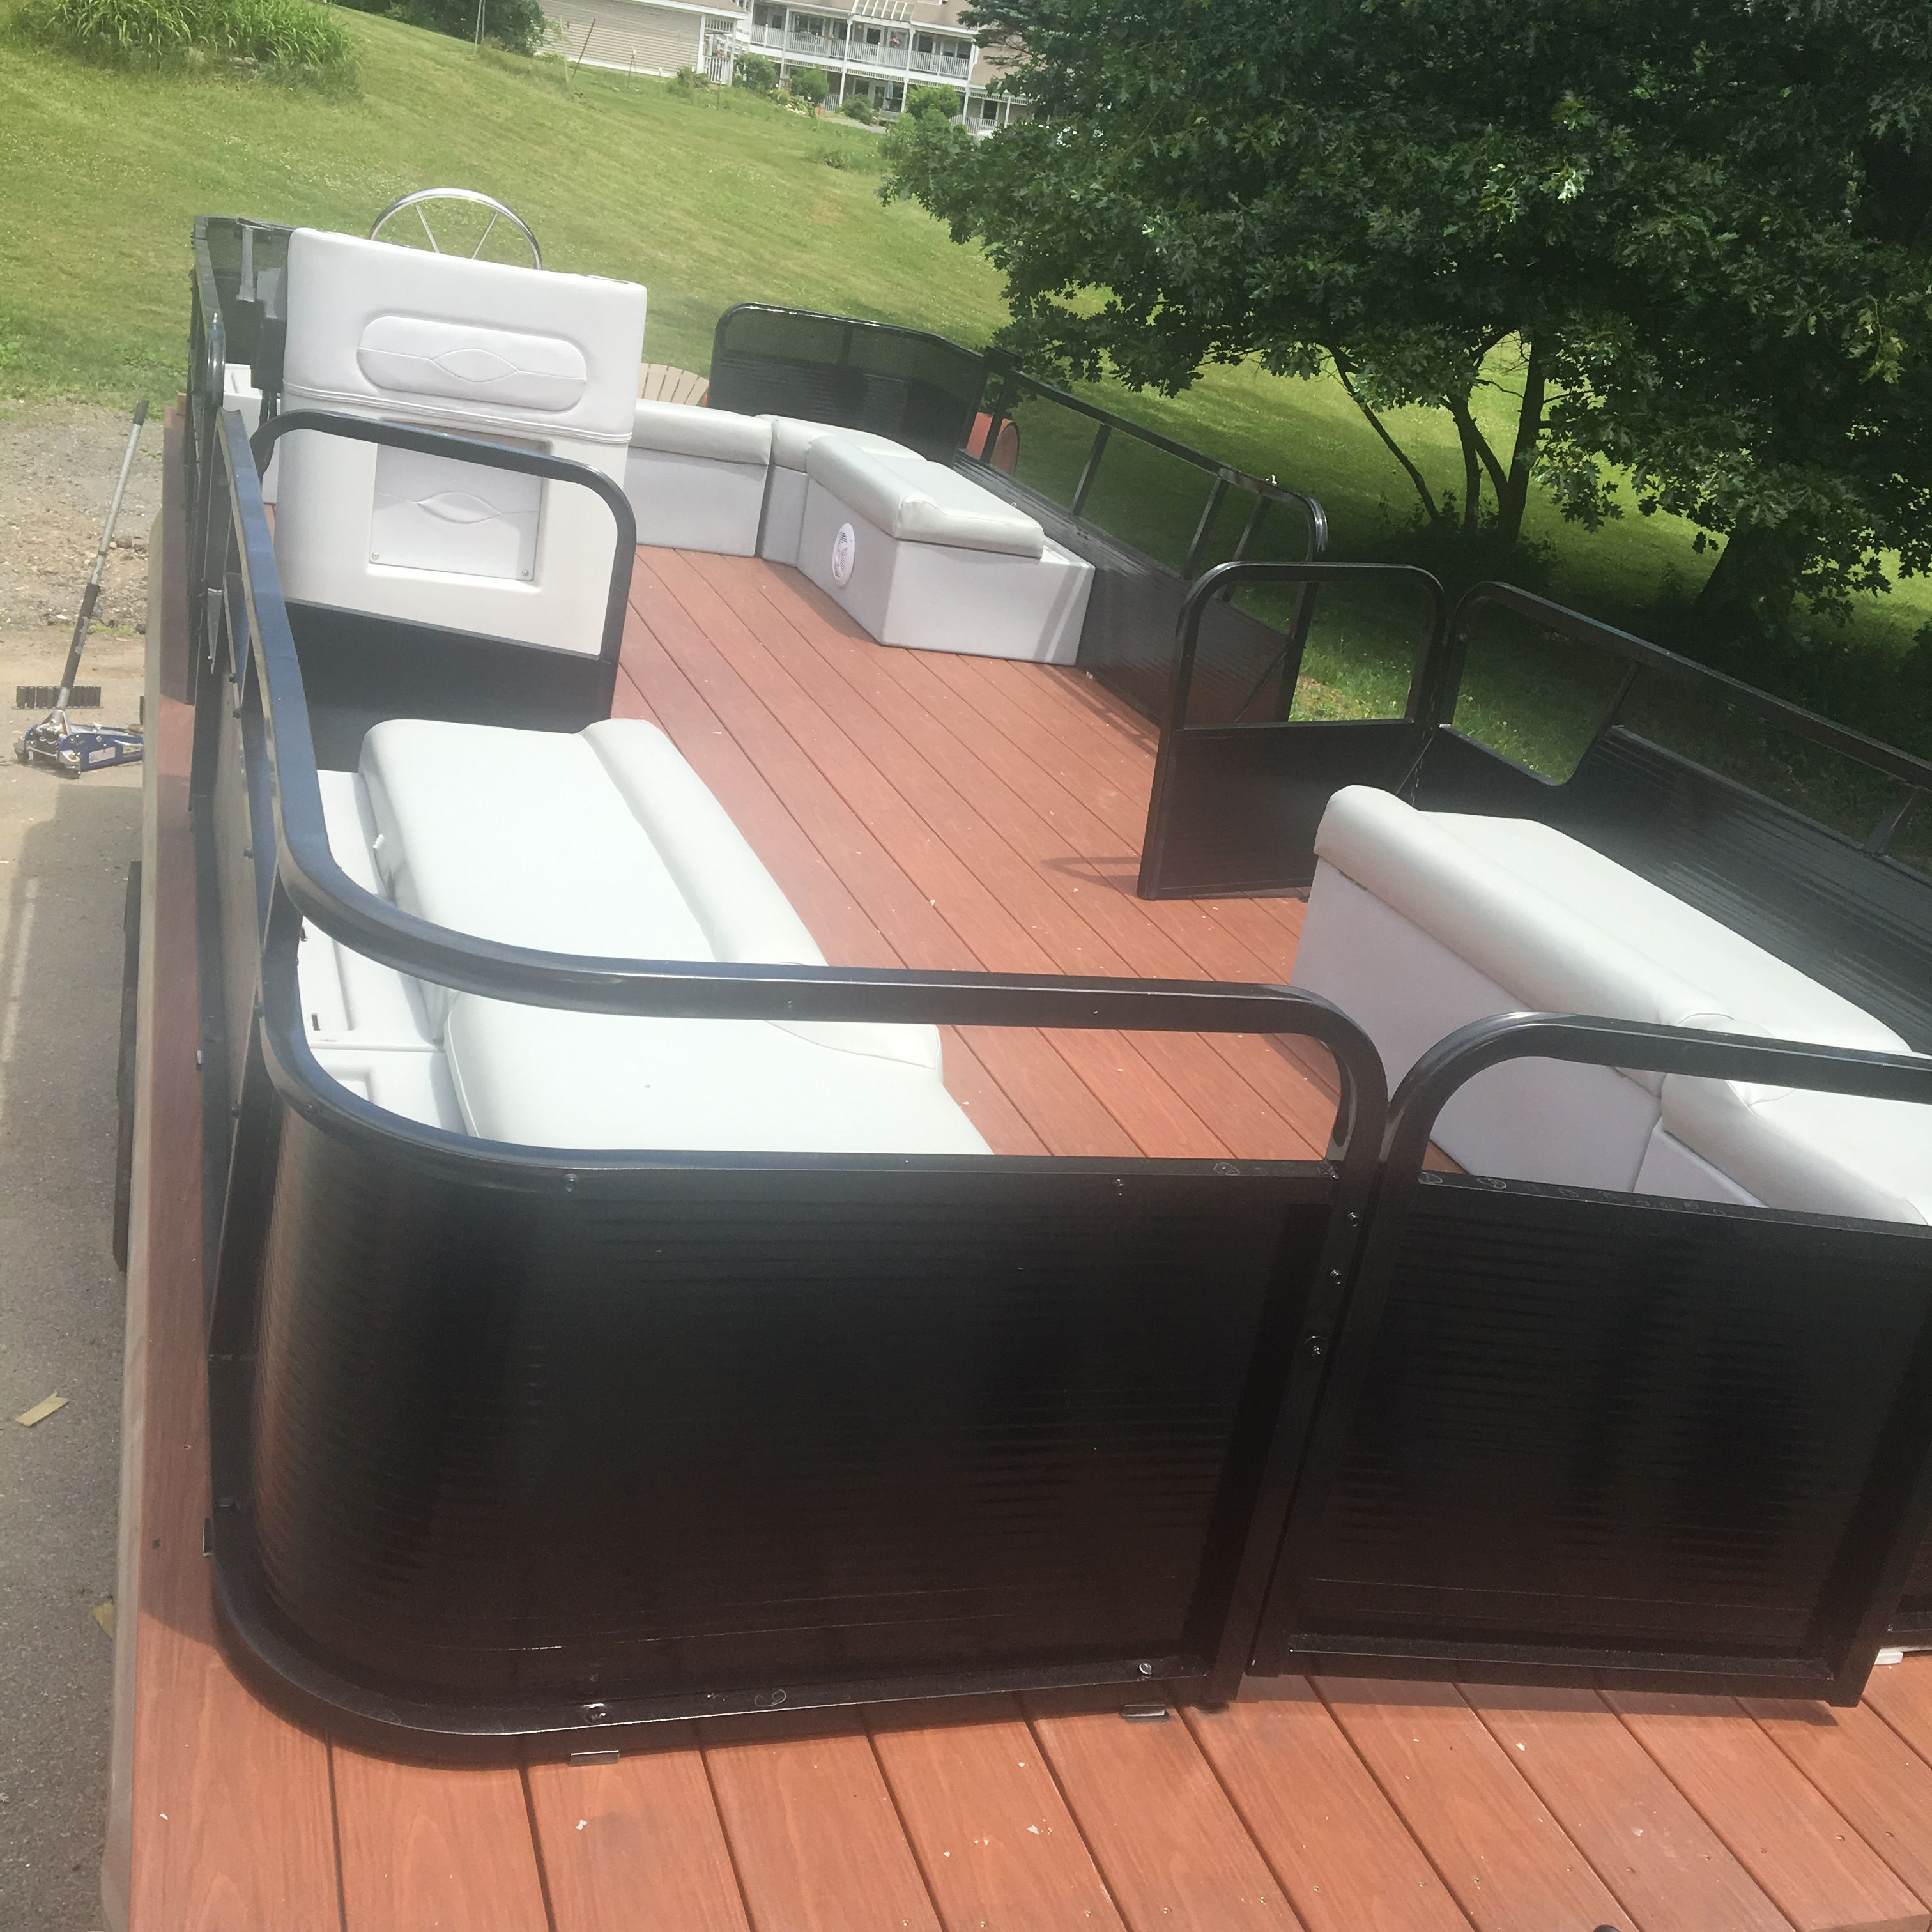 Pontoon Restoration Almost Complete Trex Flooring New Playpen Paint And Seat Reupholstering Pontoon Boat Seats Fishing Pontoon Pontoon Boat